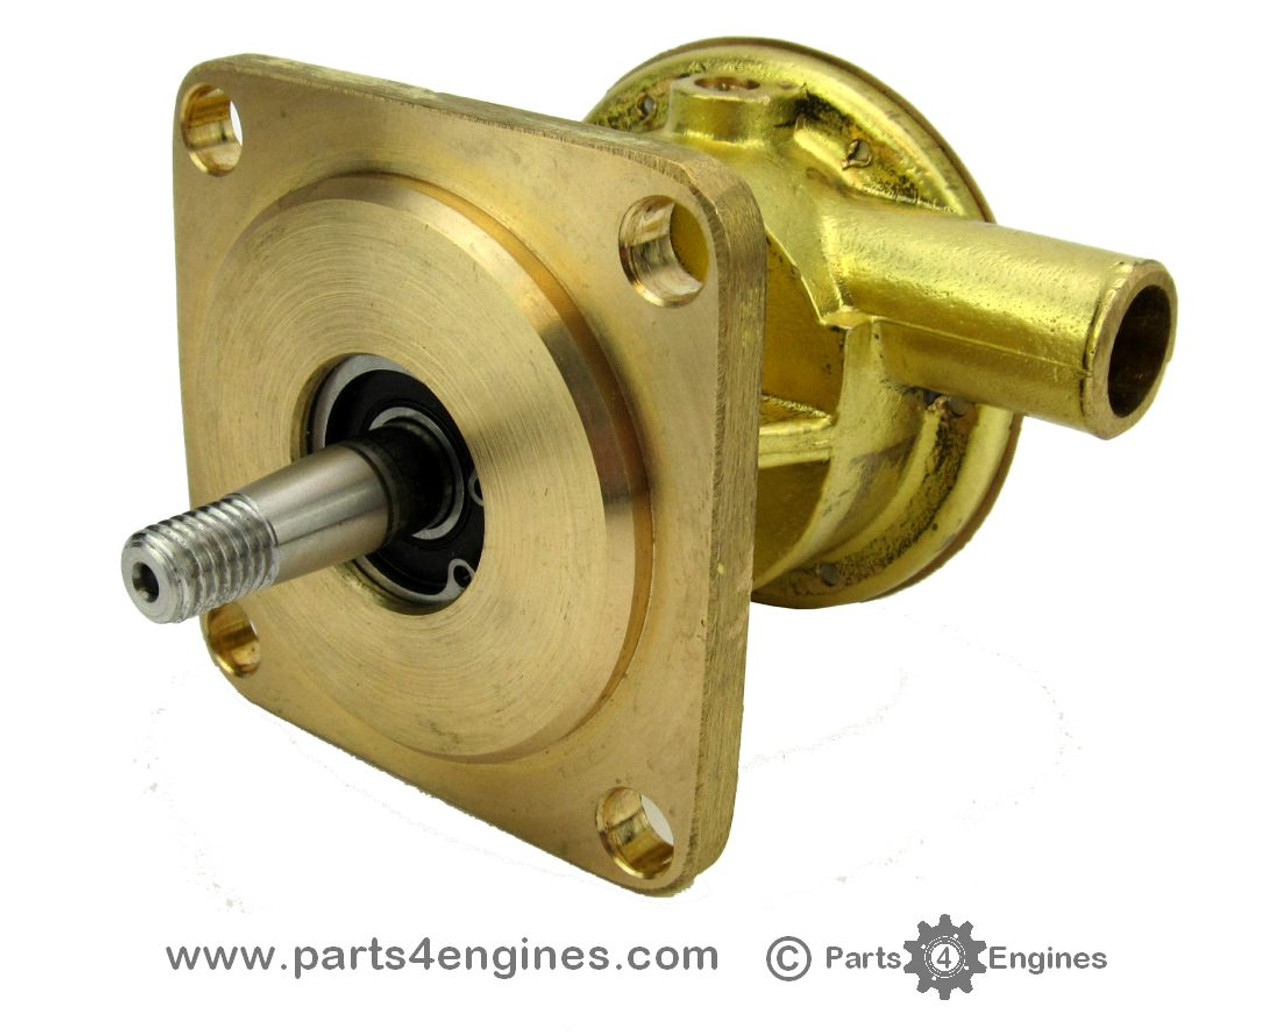 Volvo Penta D1-30 raw water pump from parts4engines.com